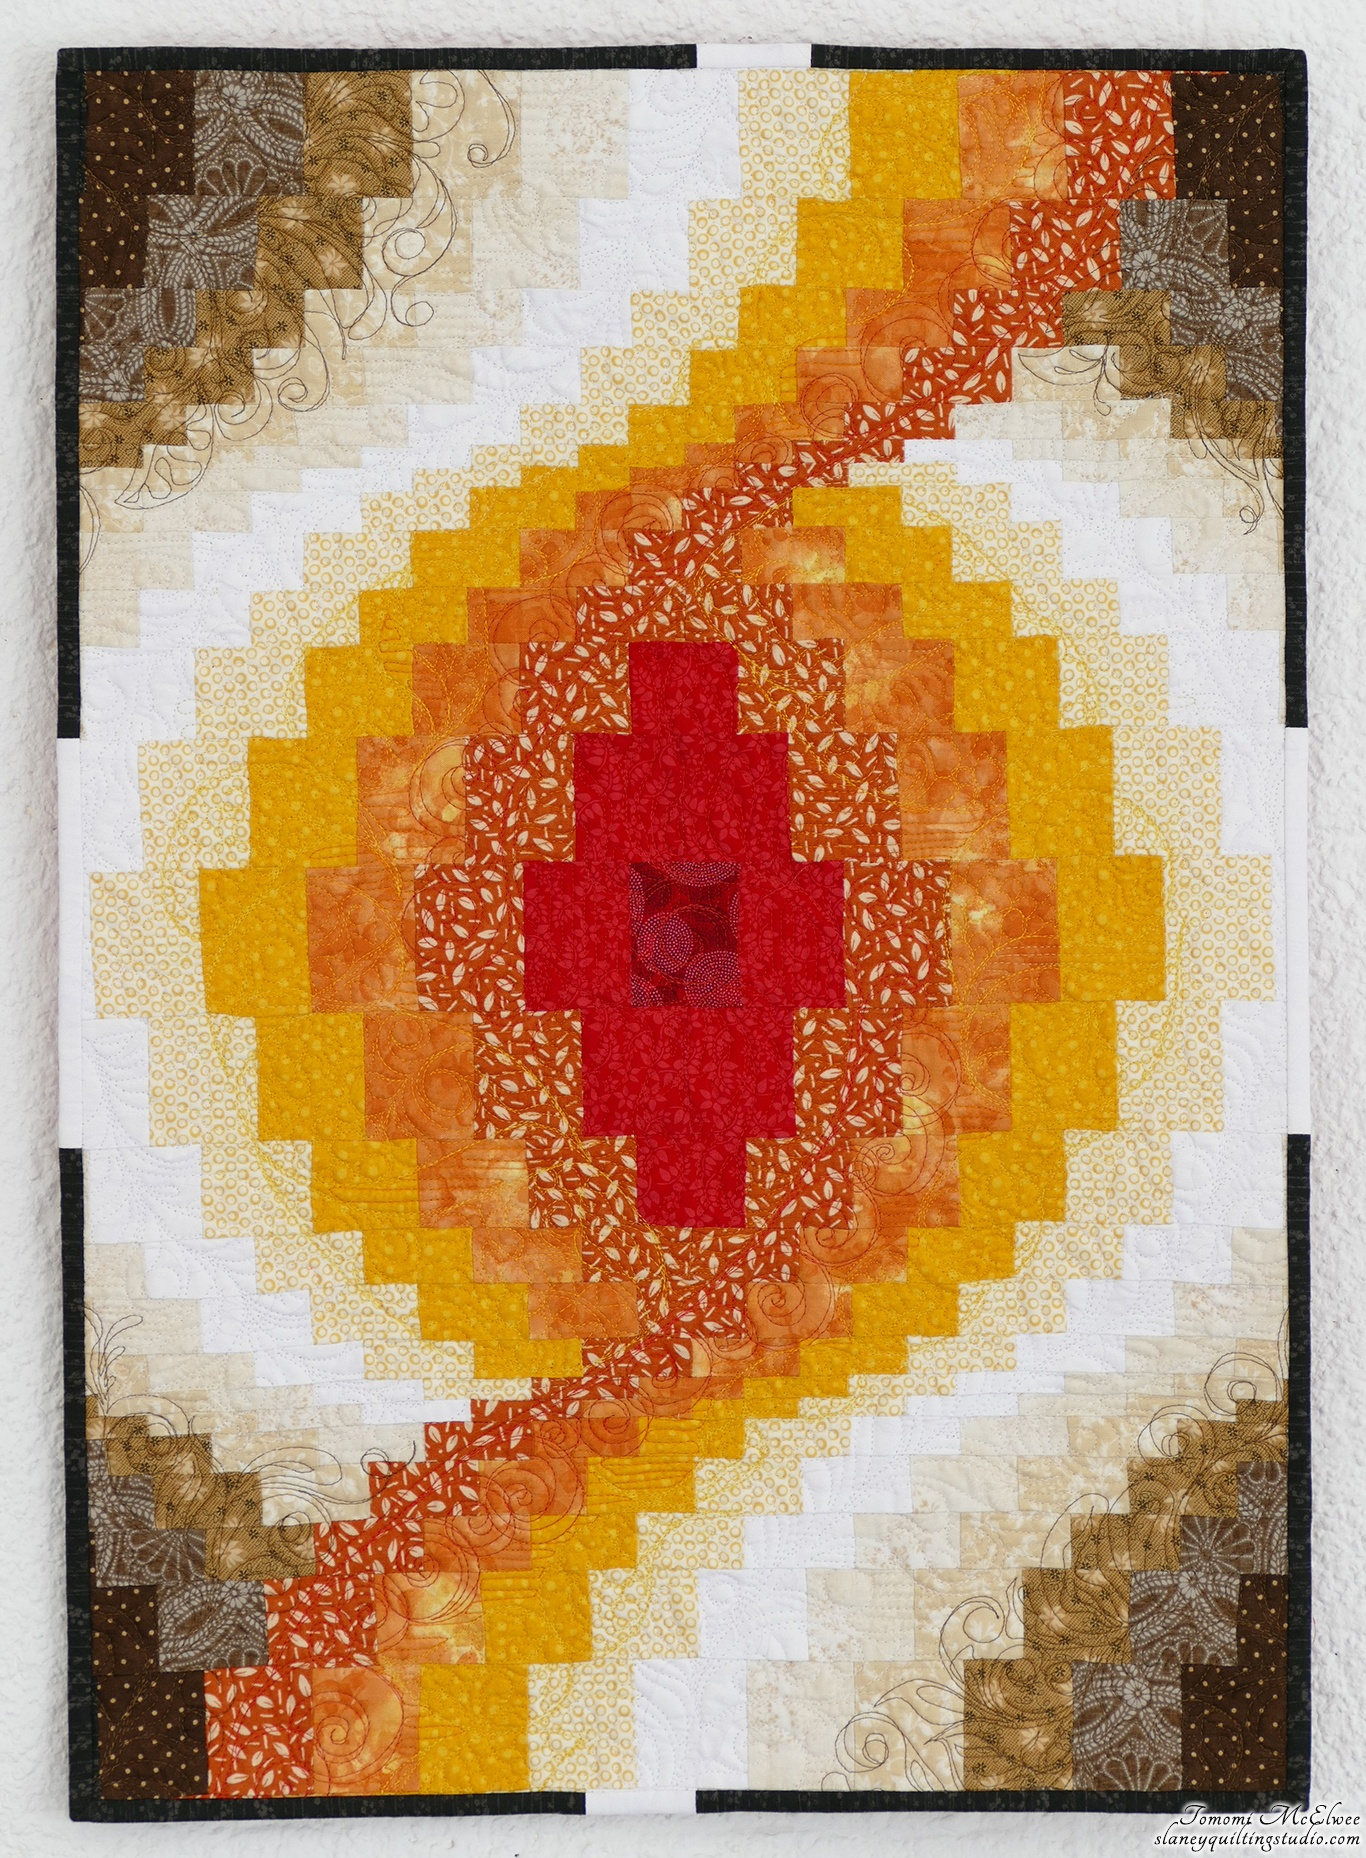 https://slaneyquiltingstudio.com/wp-content/uploads/2019/09/Tomomi-Bargello-full-size-small-3-1.jpg